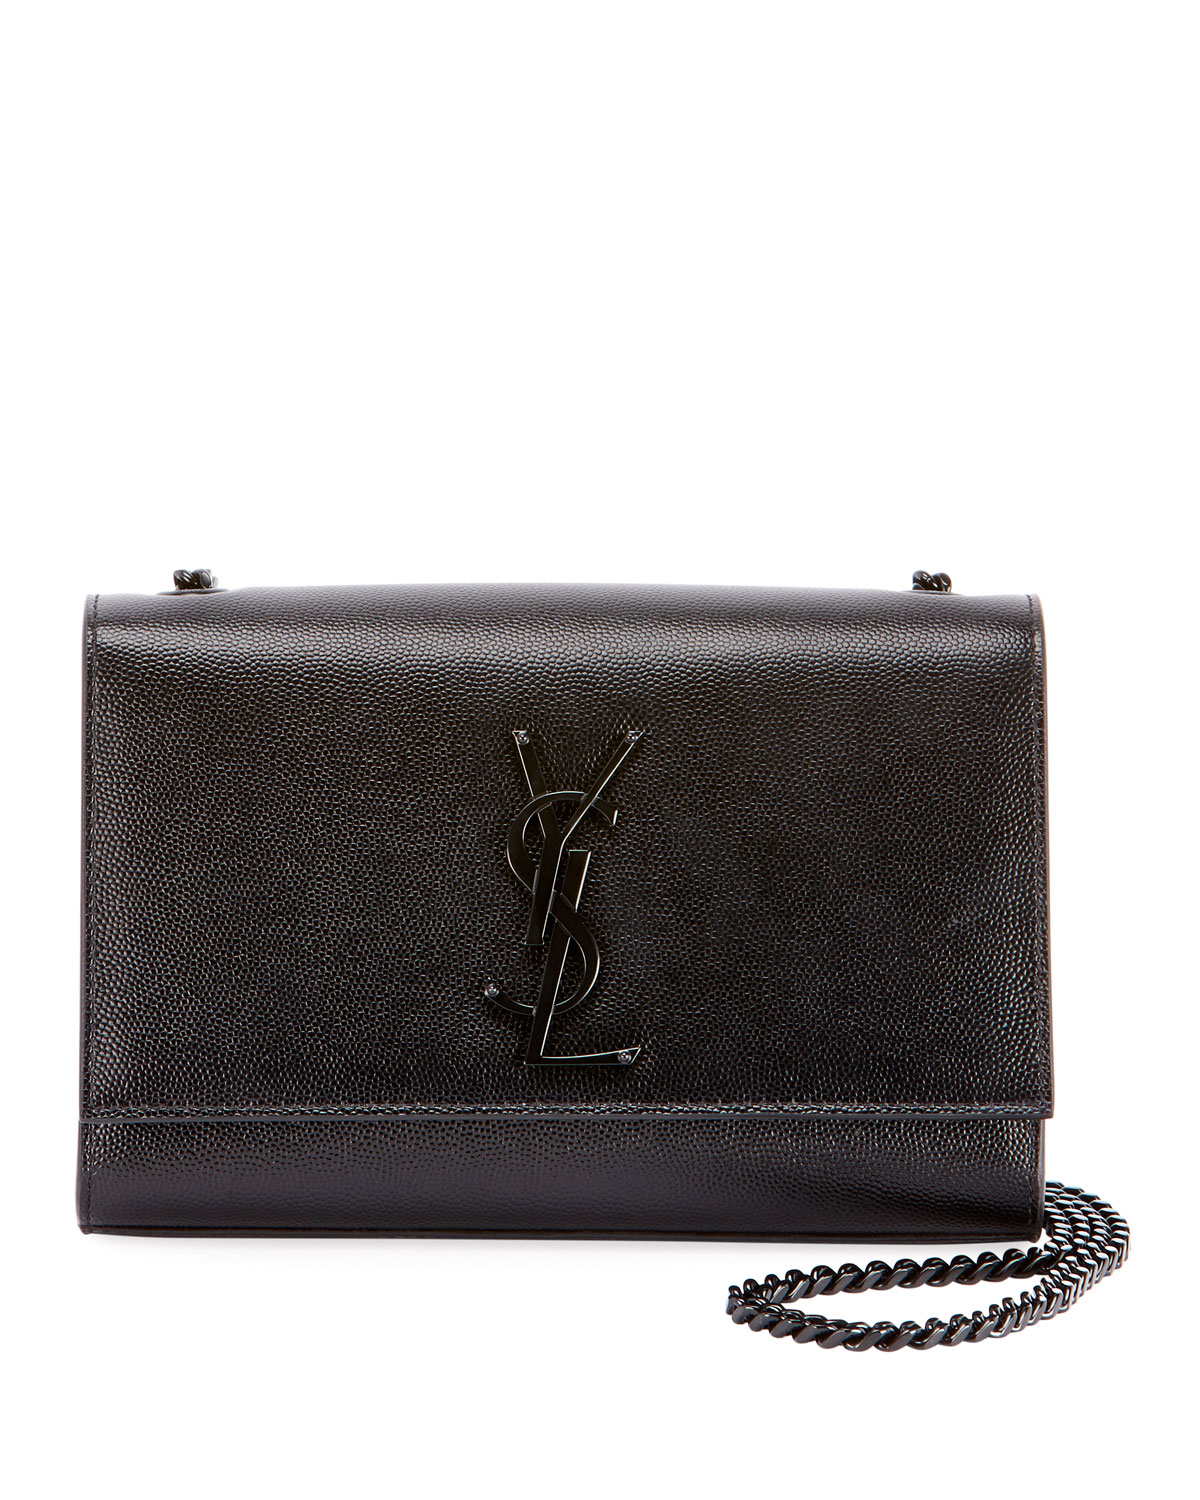 Saint Laurent Kate Monogram YSL Small Chain Shoulder Bag   Neiman Marcus 6bb9d5fbb6